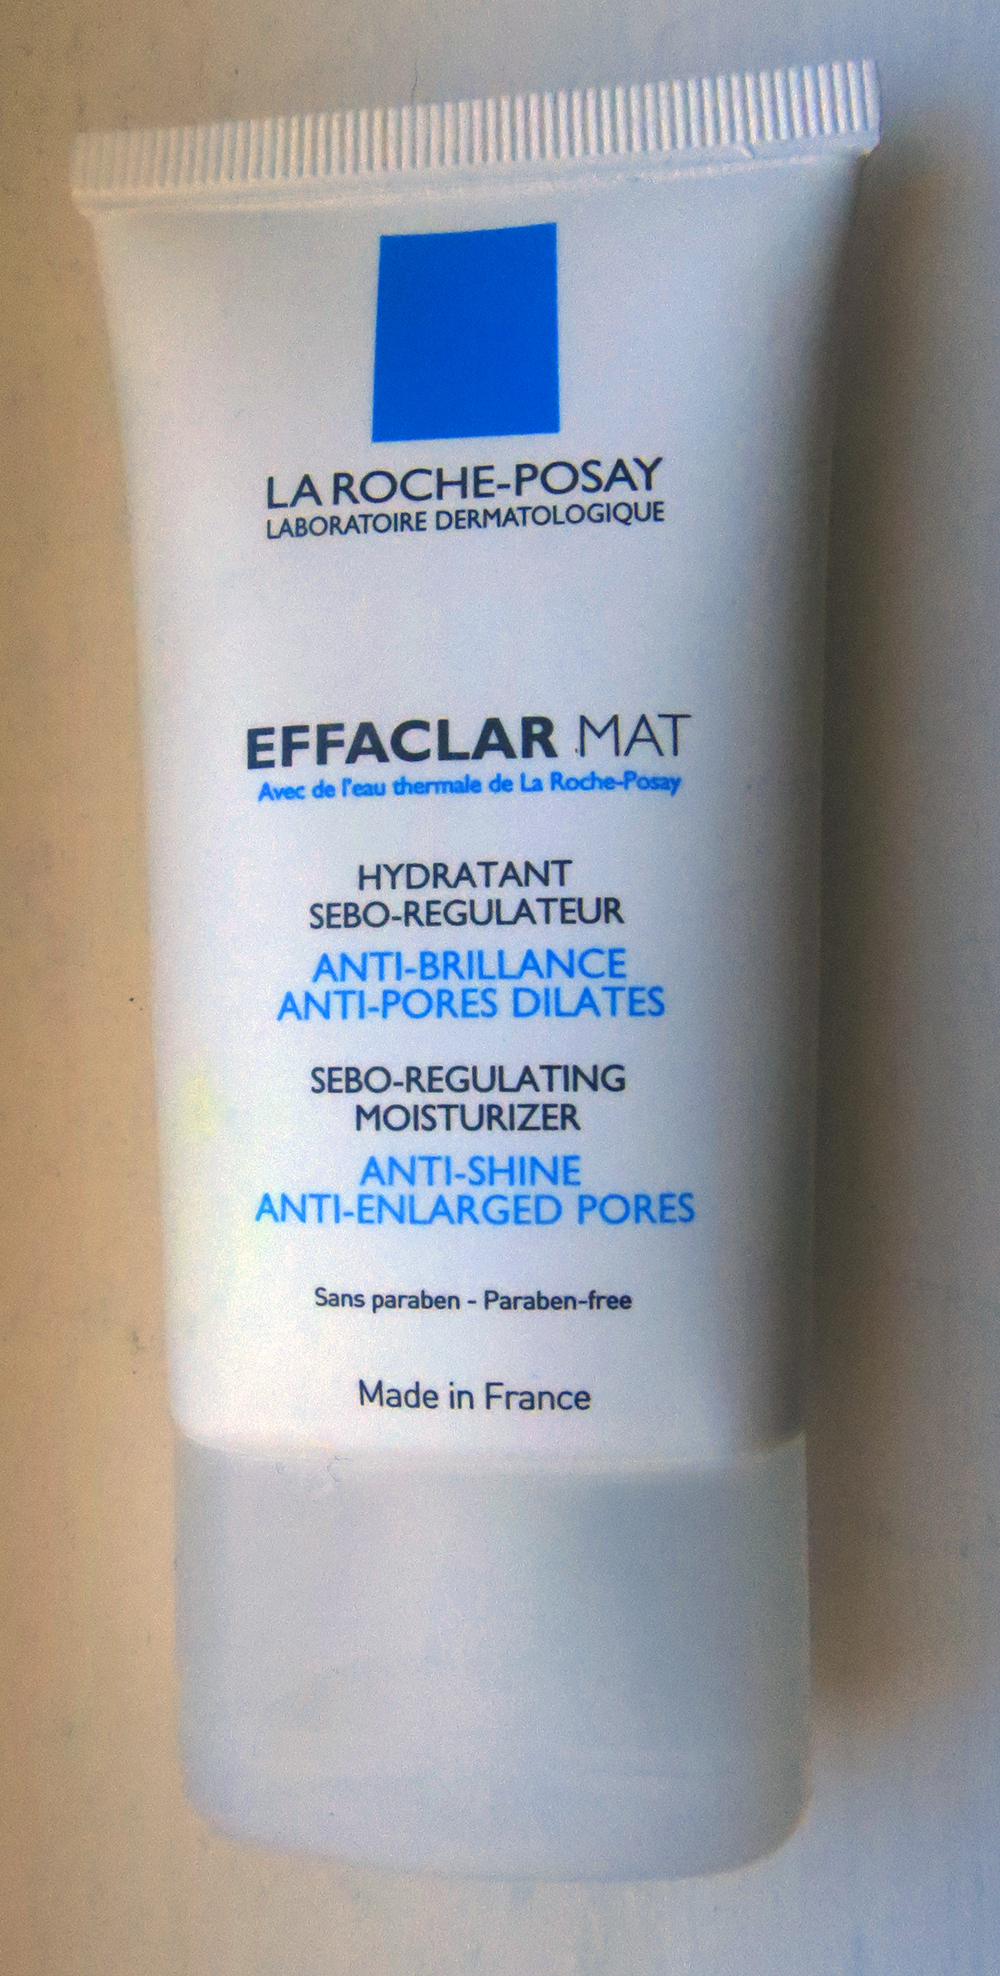 gr care acne face boxpharmacy la mat duo en mats posay roche catalog effaclar